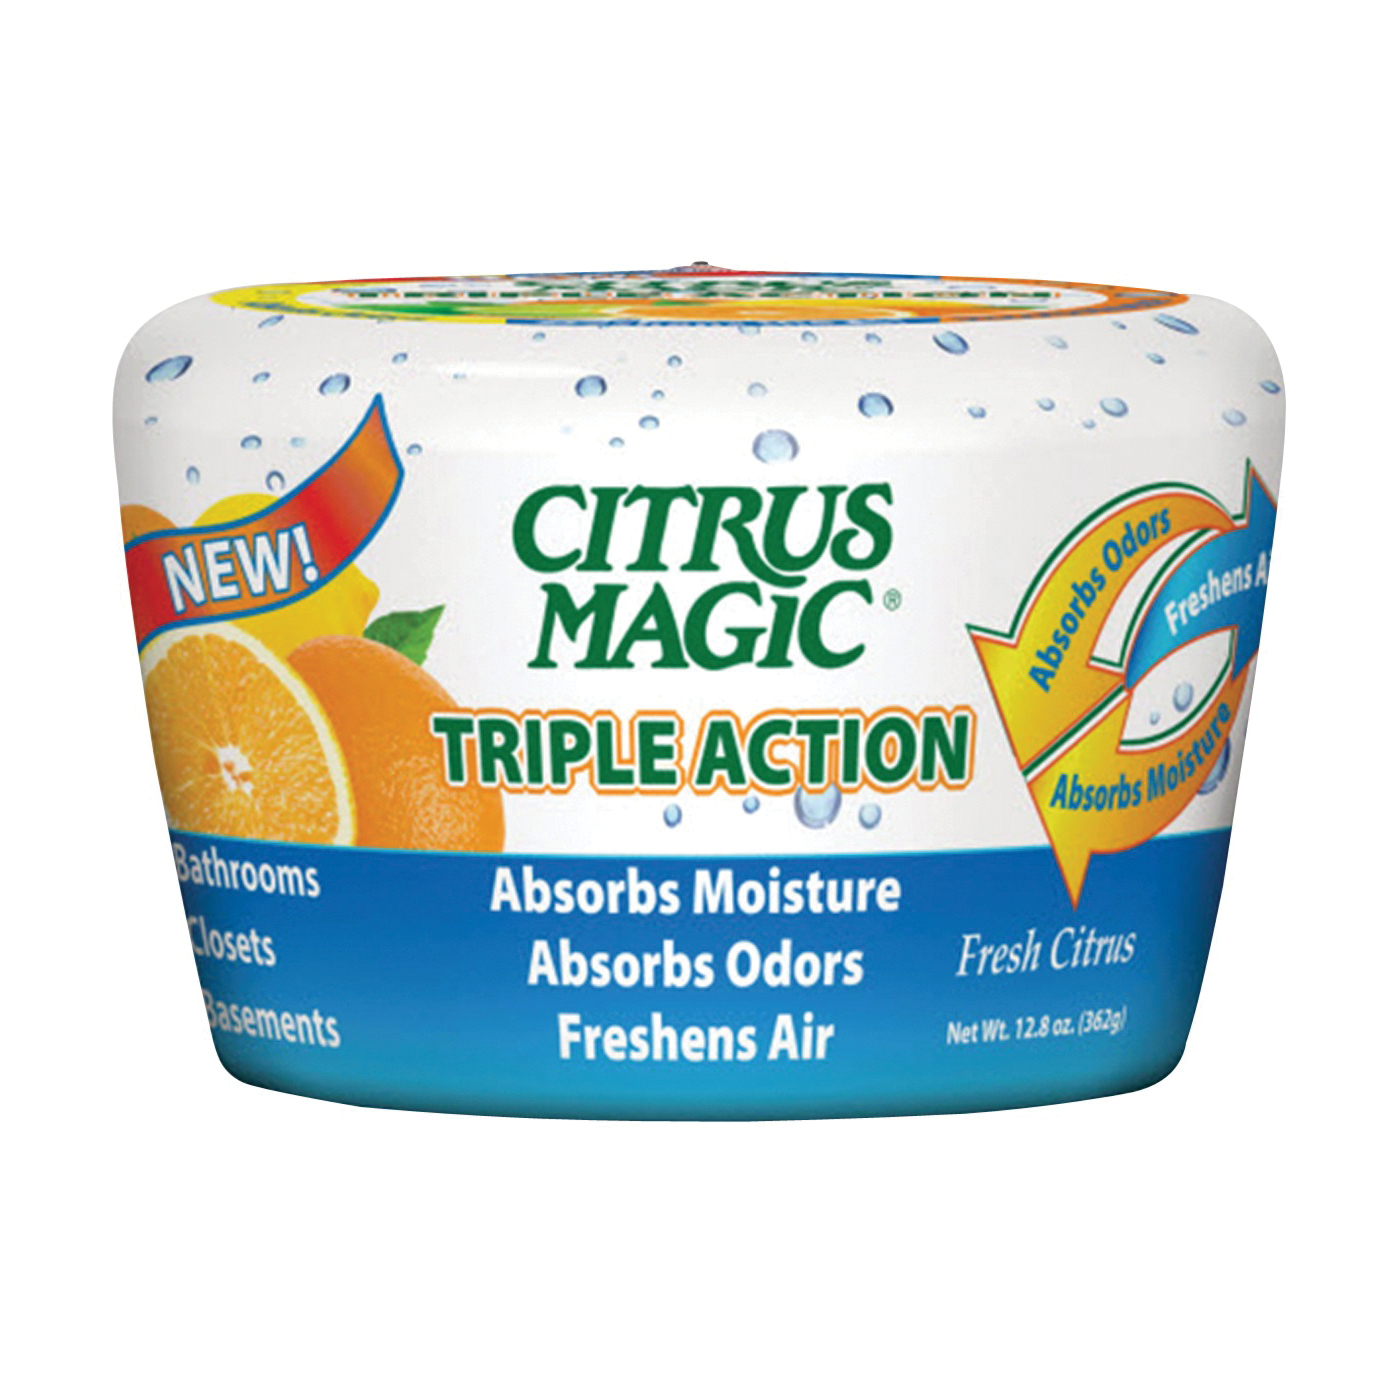 Picture of Citrus Magic 618372454-6PK Moisture and Odor Absorber, 12.8 oz Package, Fresh Citrus